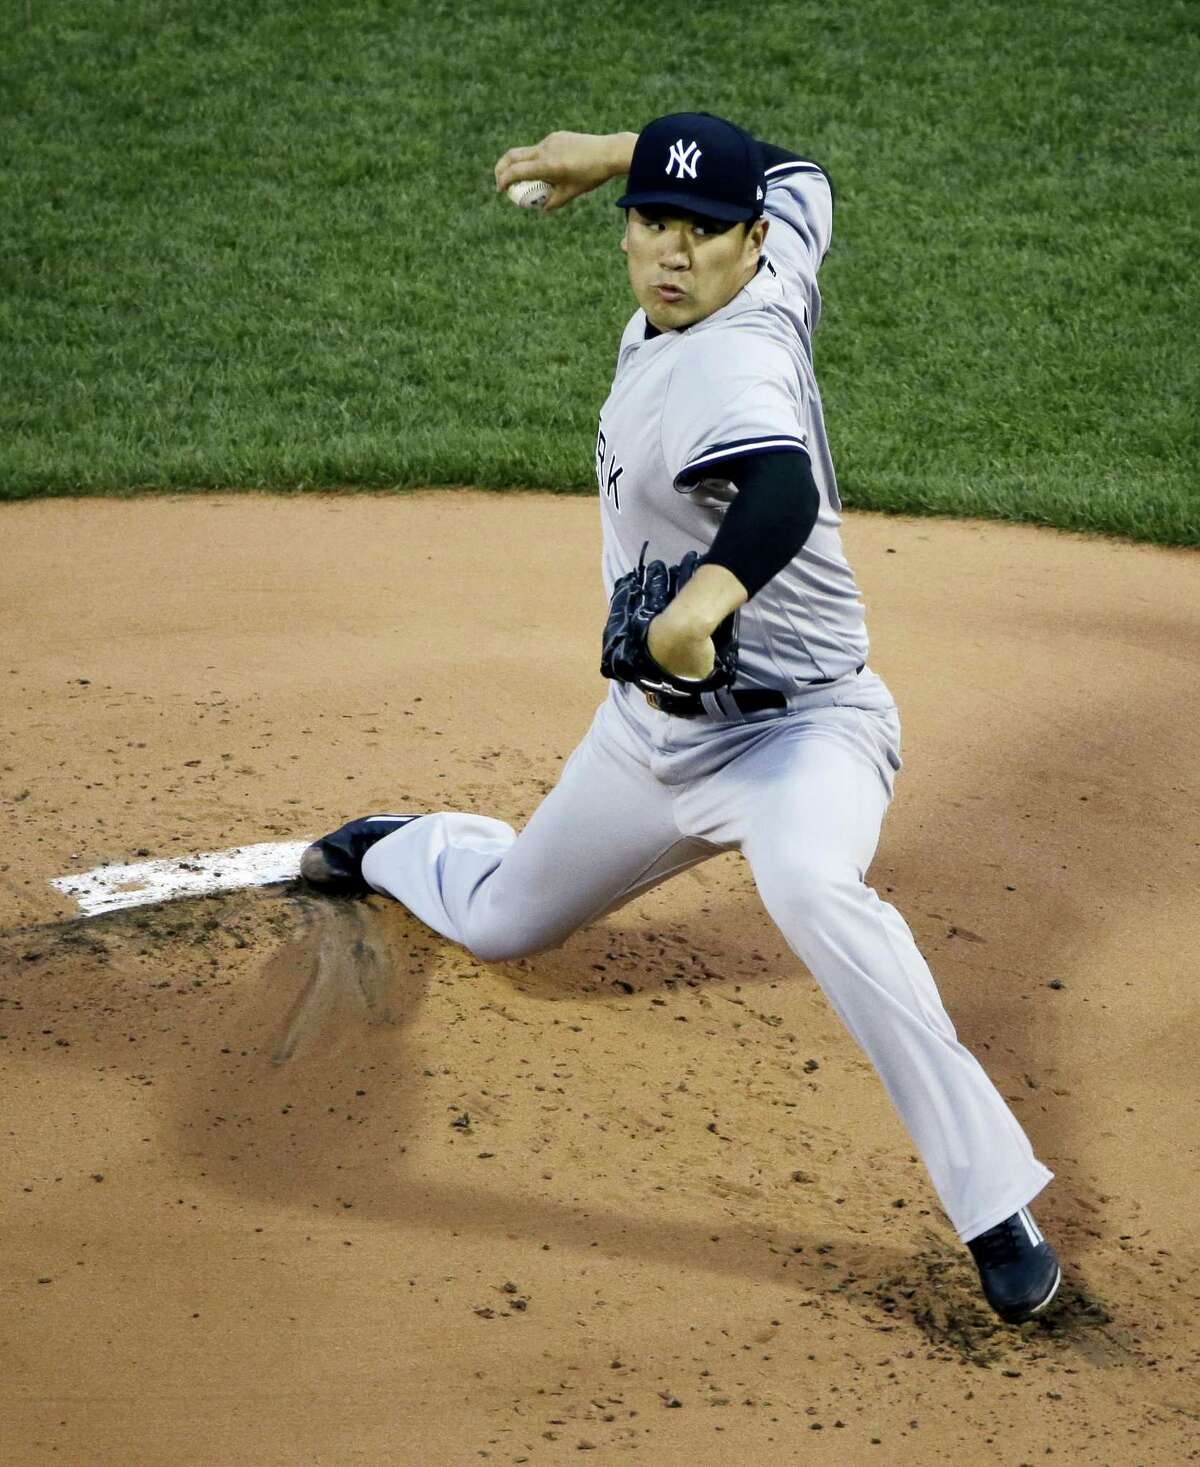 New York Yankees starting pitcher Masahiro Tanaka delivers to the Boston Red Sox during the first inning of a baseball game at Fenway Park, Thursday in Boston.